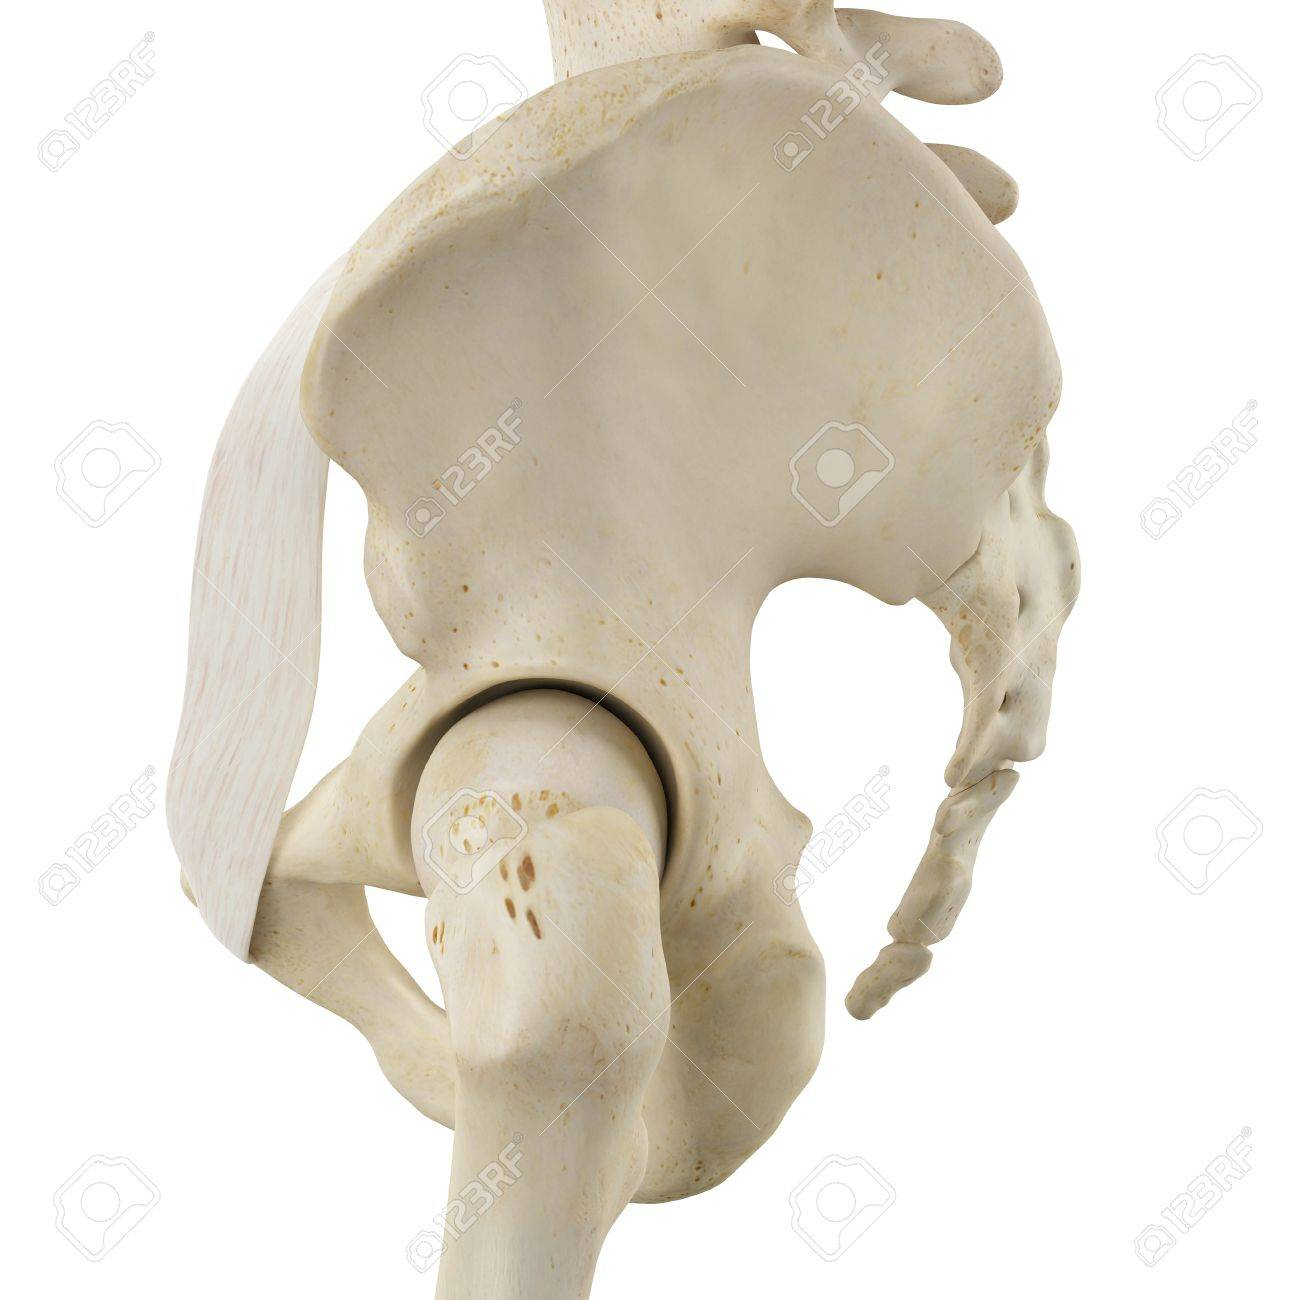 Human Pelvis Bones, Illustration Stock Photo, Picture And Royalty ...